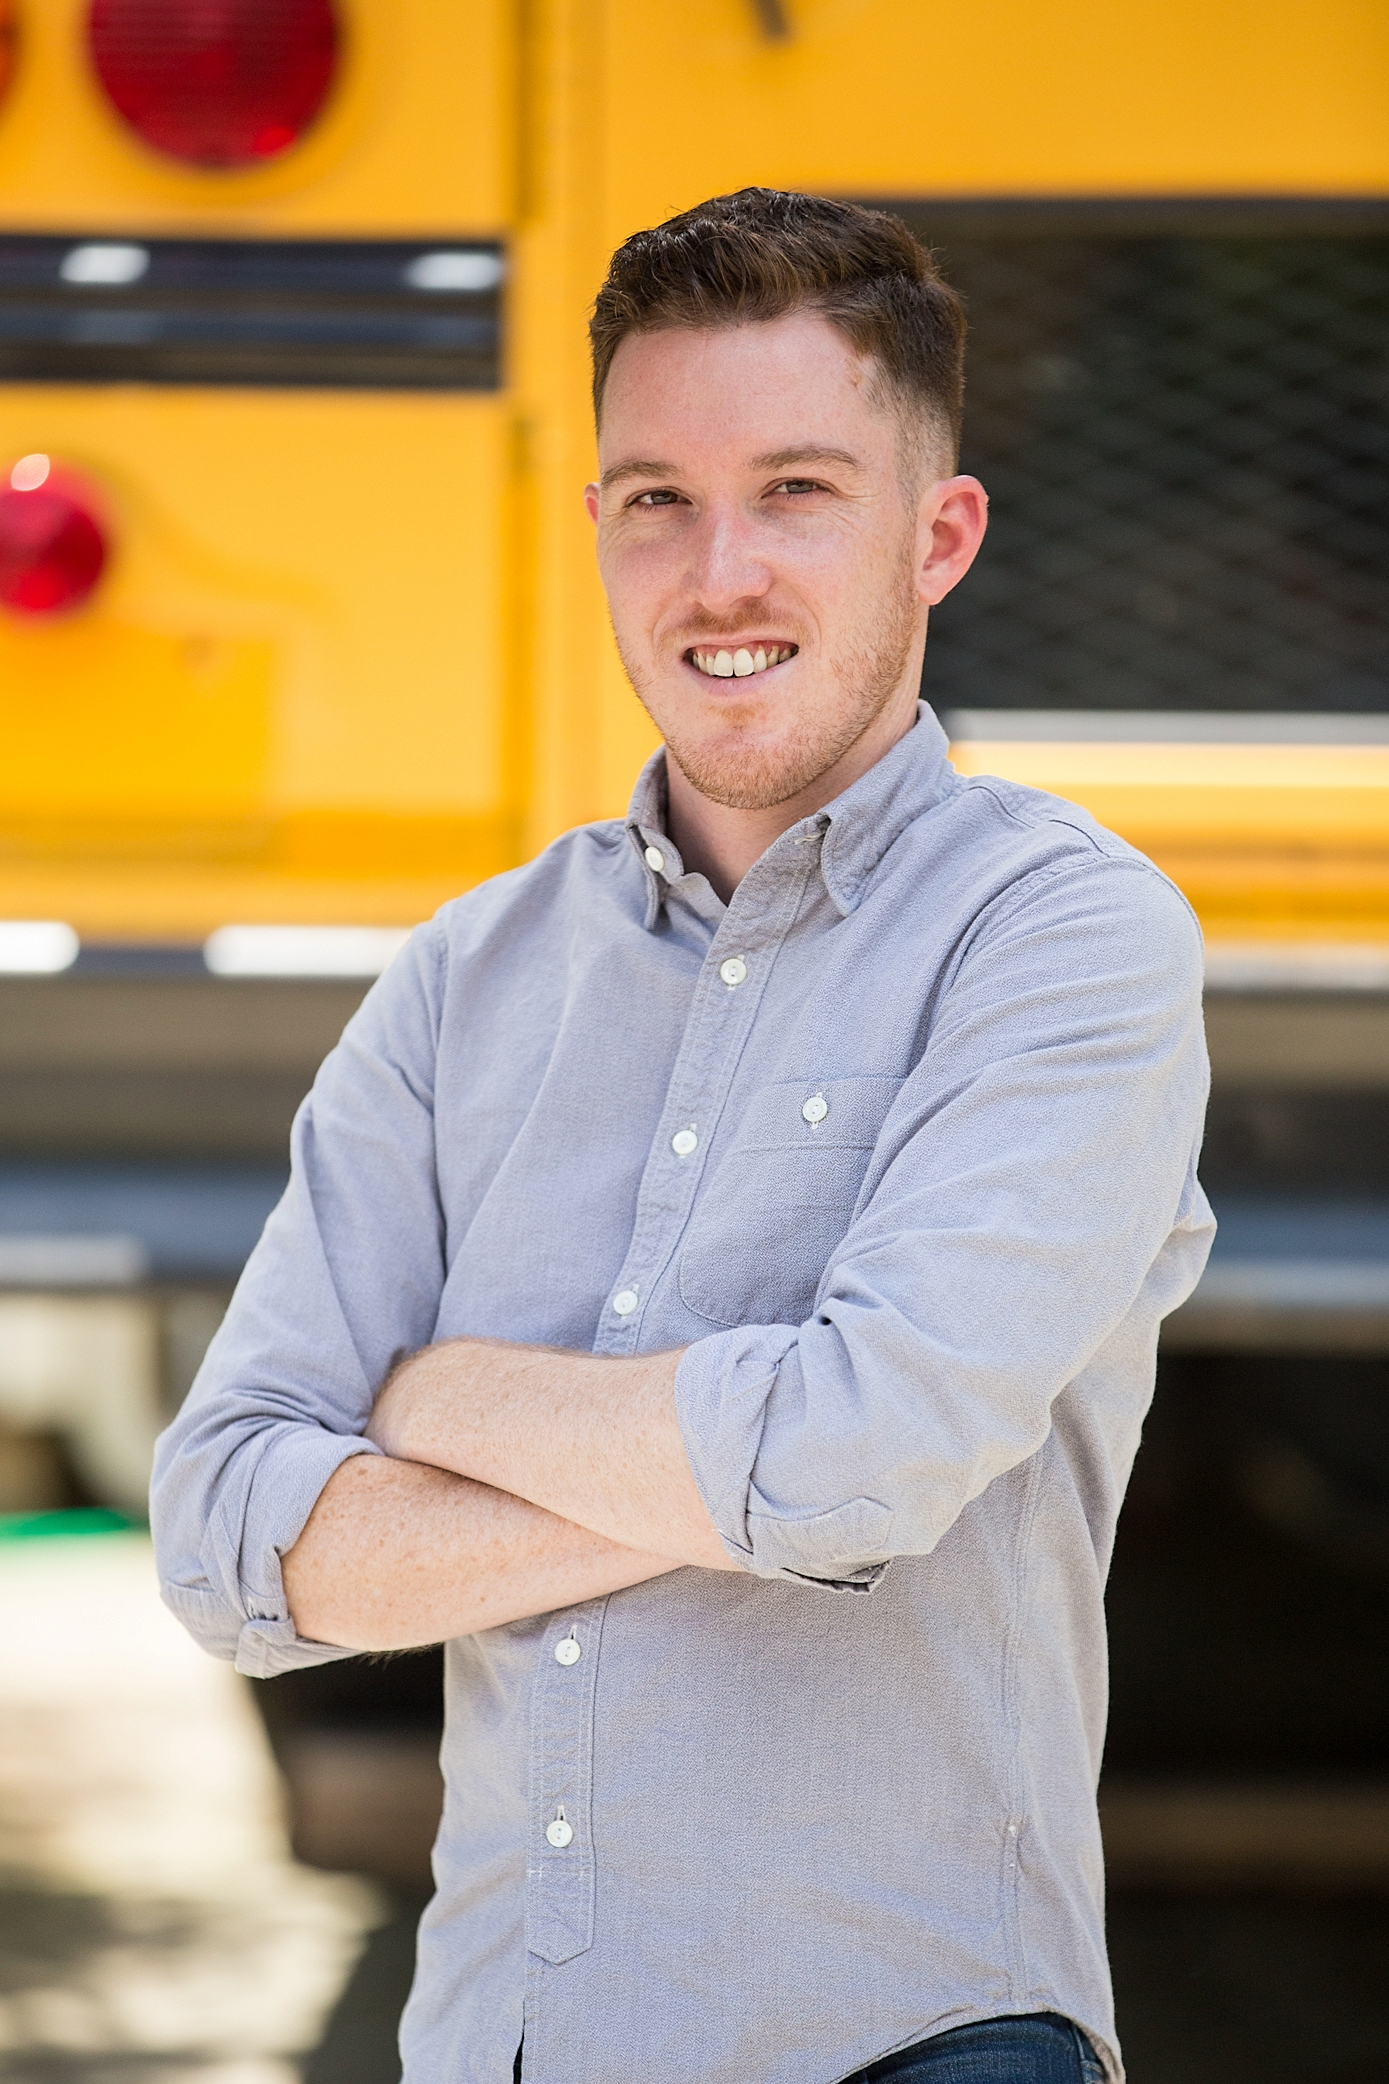 Matt Lardie | Founder of School of Home